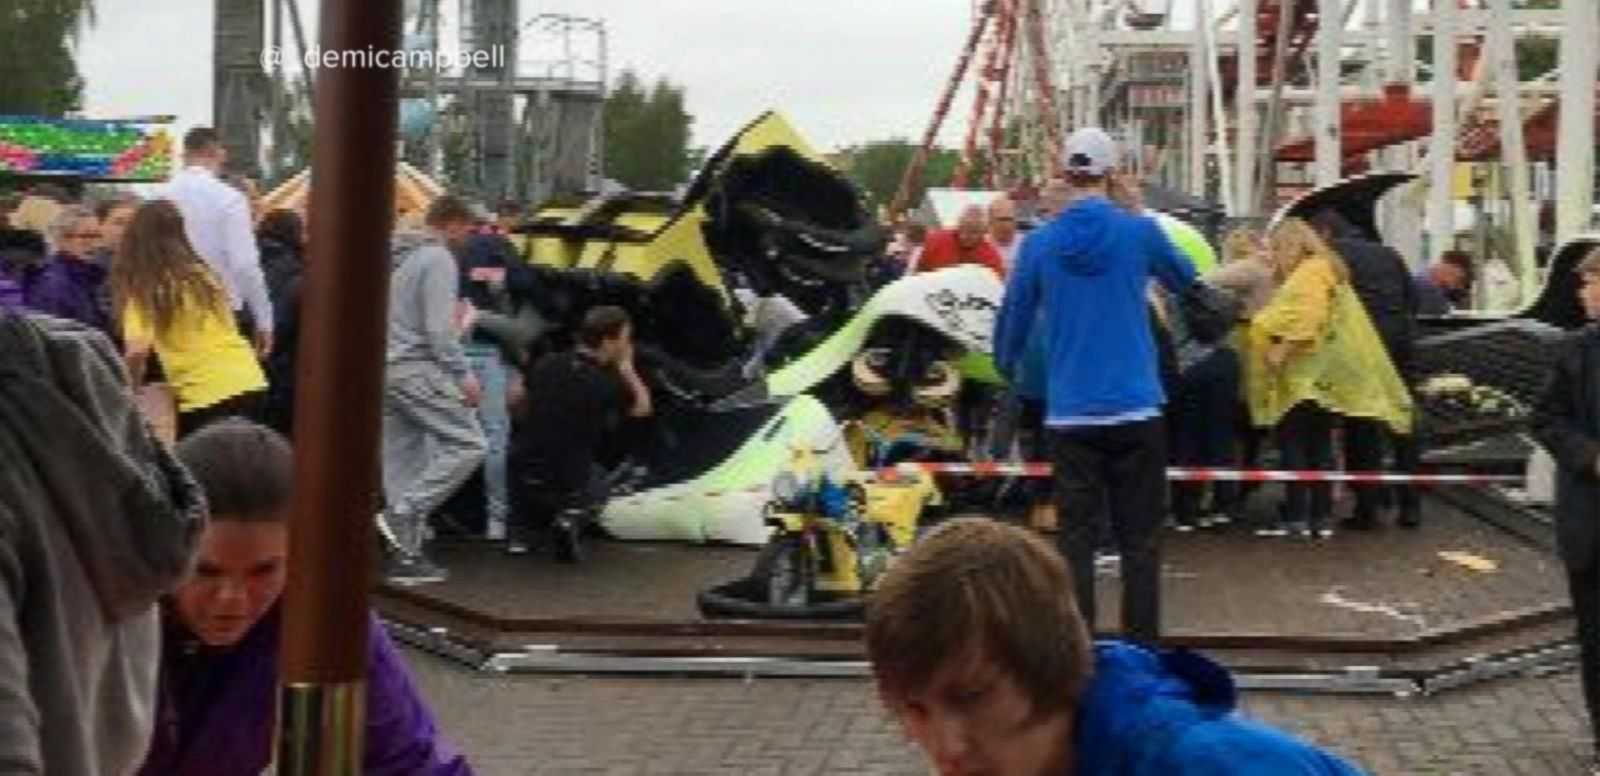 VIDEO: Roller Coaster Derails, Injuring 10 People